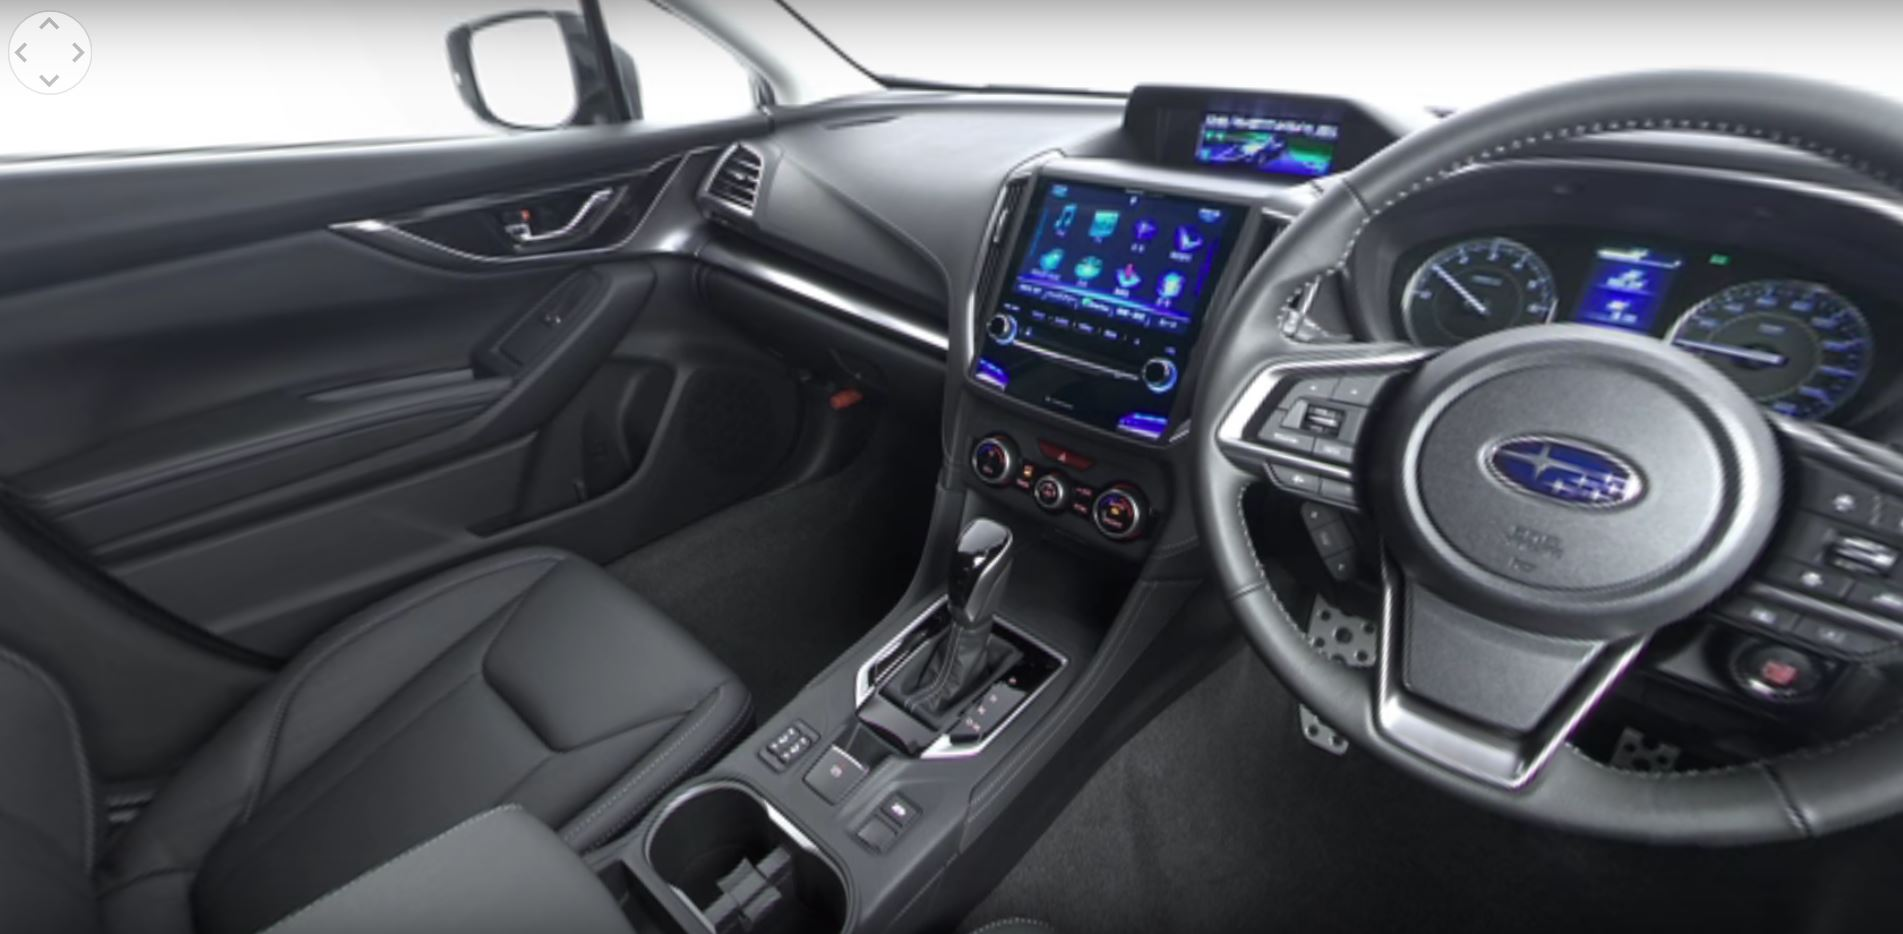 360 Degree Video Of 2017 Impreza Interior Released By Subaru In An